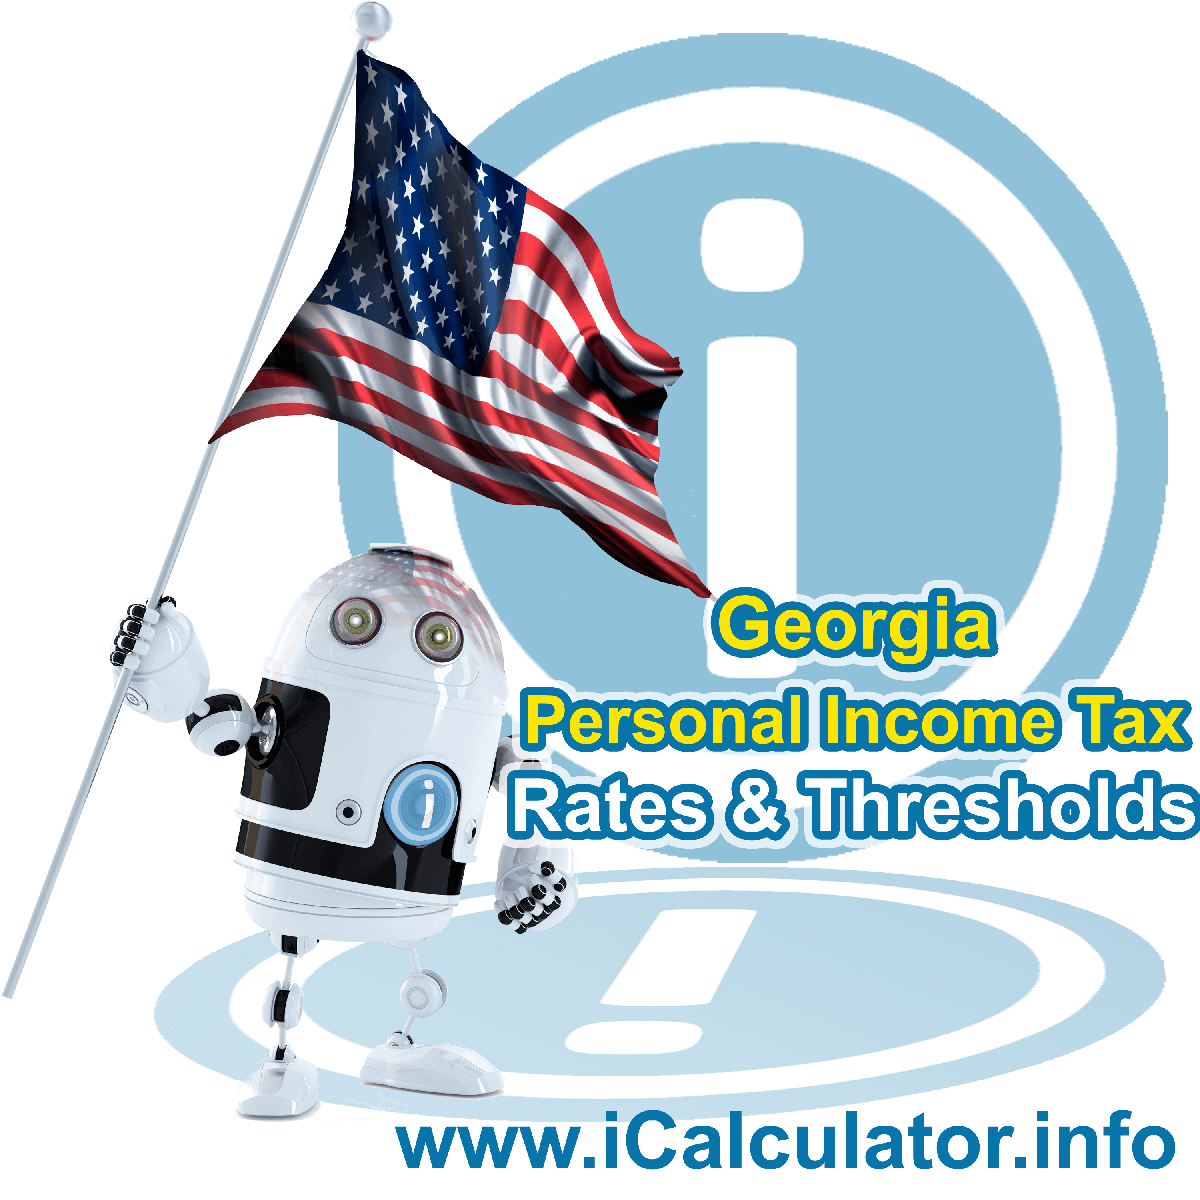 Georgia State Tax Tables 2017. This image displays details of the Georgia State Tax Tables for the 2017 tax return year which is provided in support of the 2017 US Tax Calculator